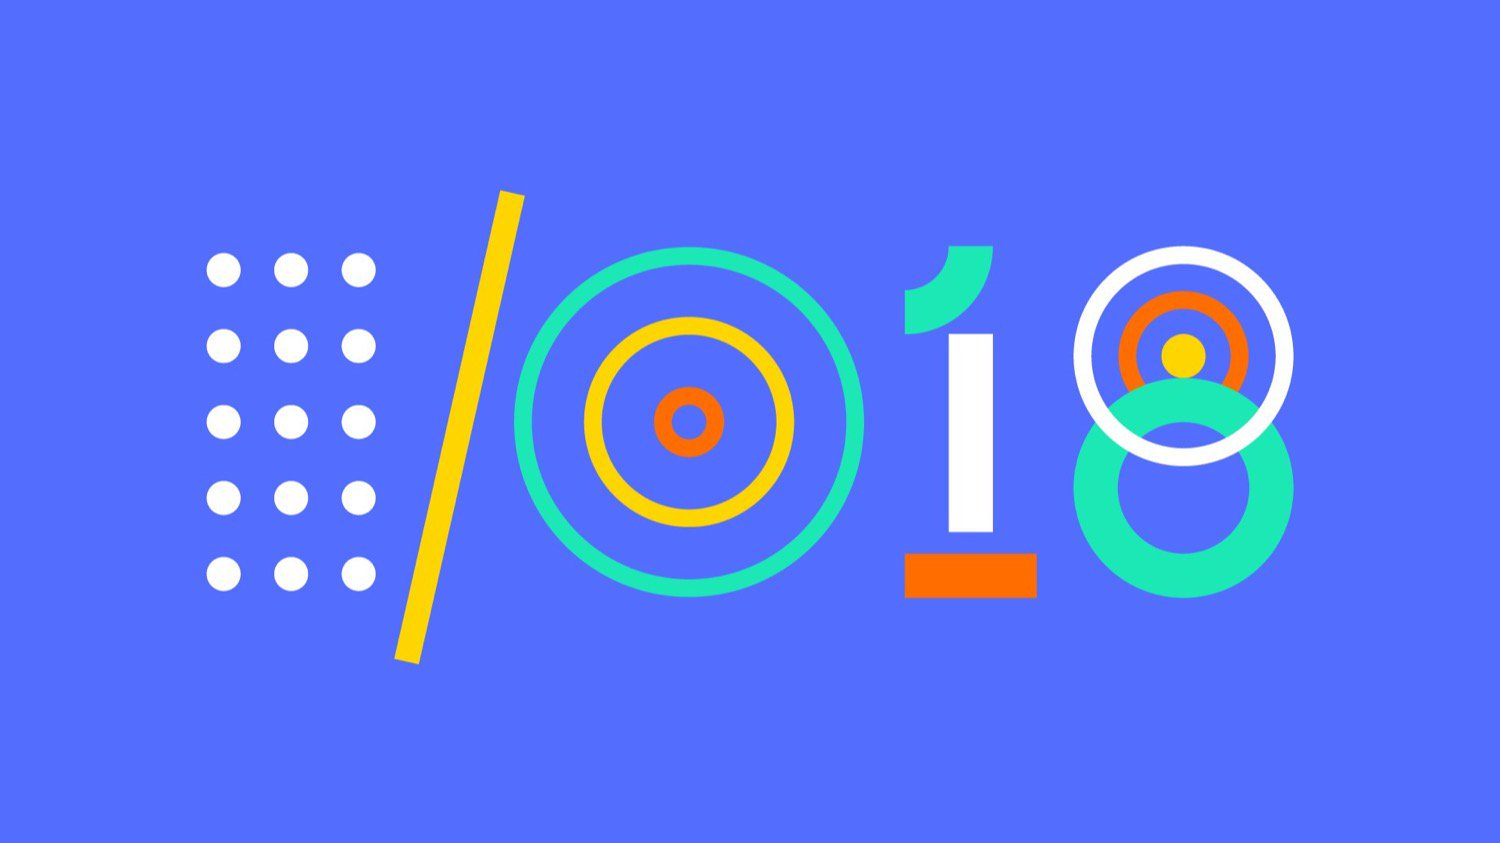 The results of the Google I/O 2018: Android P Google Lens and more